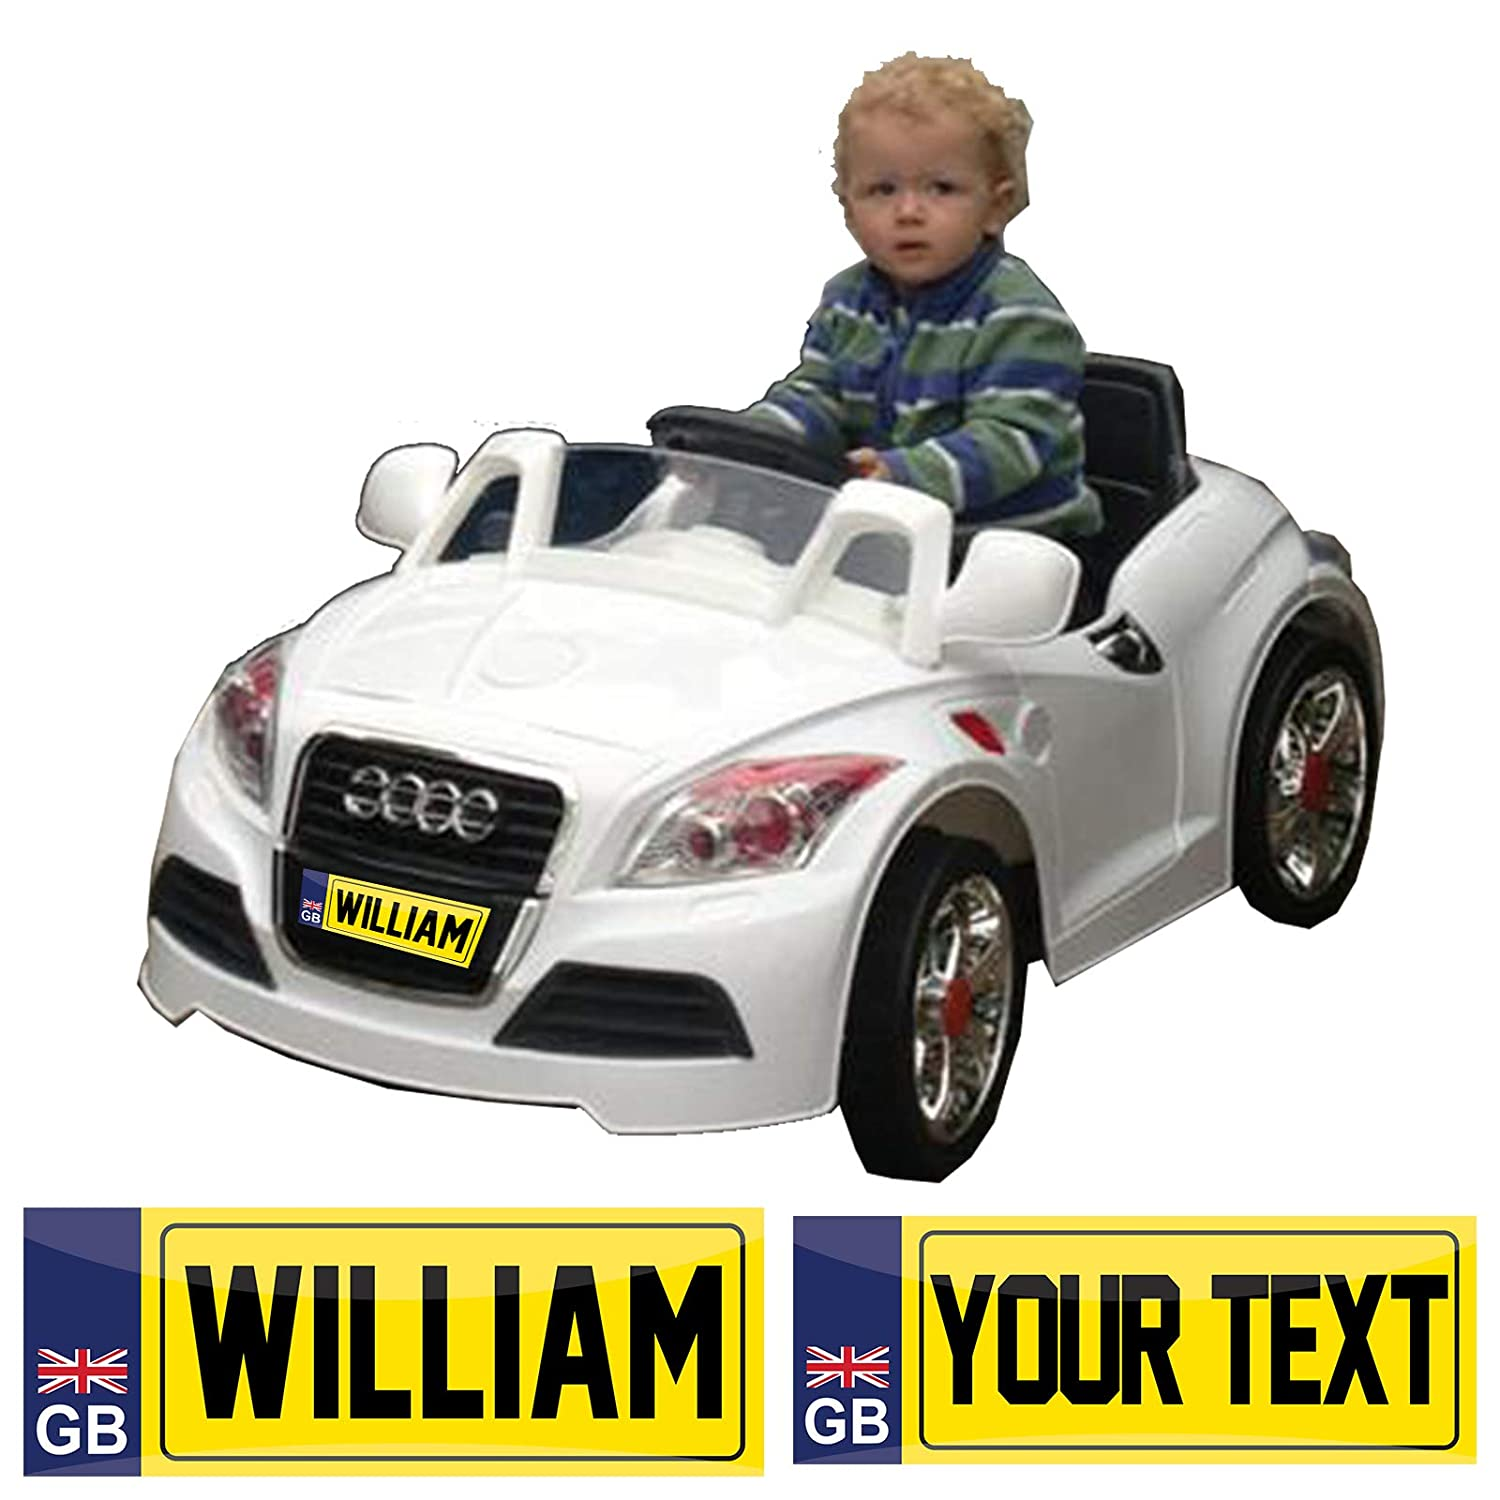 123t PERSONALISED METAL MINI LICENCE NUMBER PLATE - KIDS CHILD NOVELTY RIDE ON PEDAL ELECTRIC CAR - Trike Truck Toy Bedroom Door Sign / Plaque (29.5cm x 9cm)